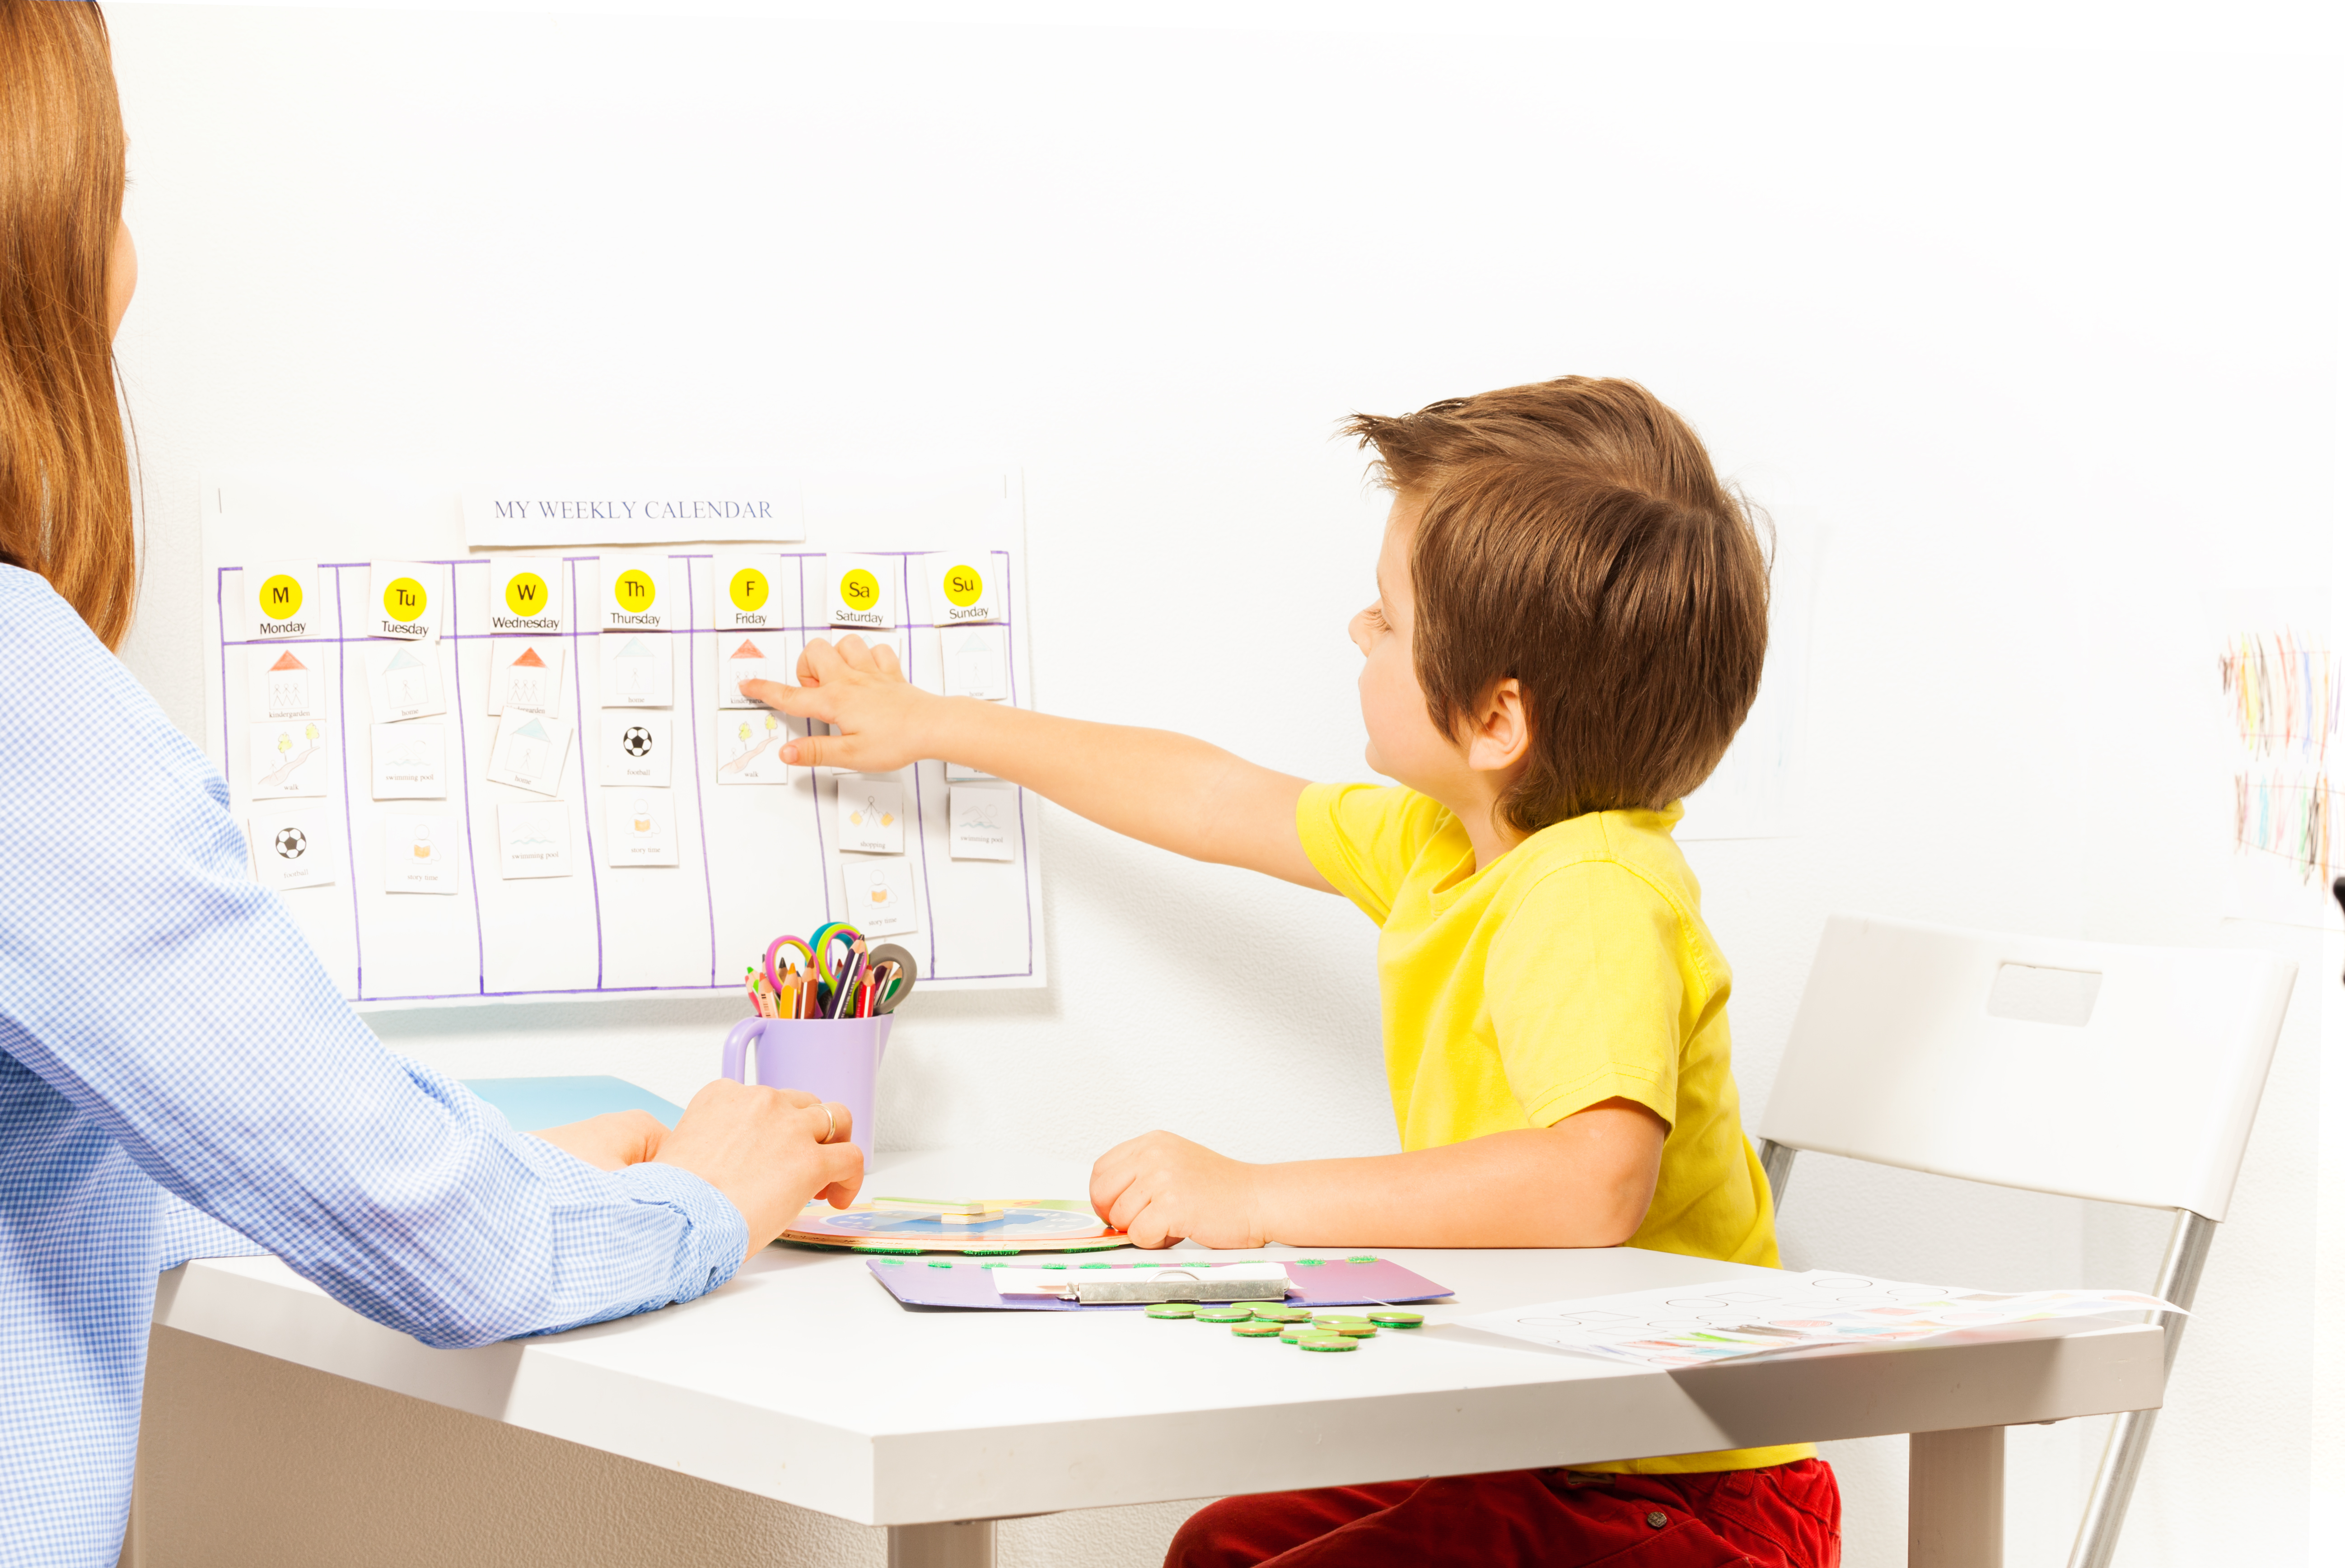 Boy pointing at the calendar on the wall with days and activities arranged developing game with his parent sitting opposite at the table indoors